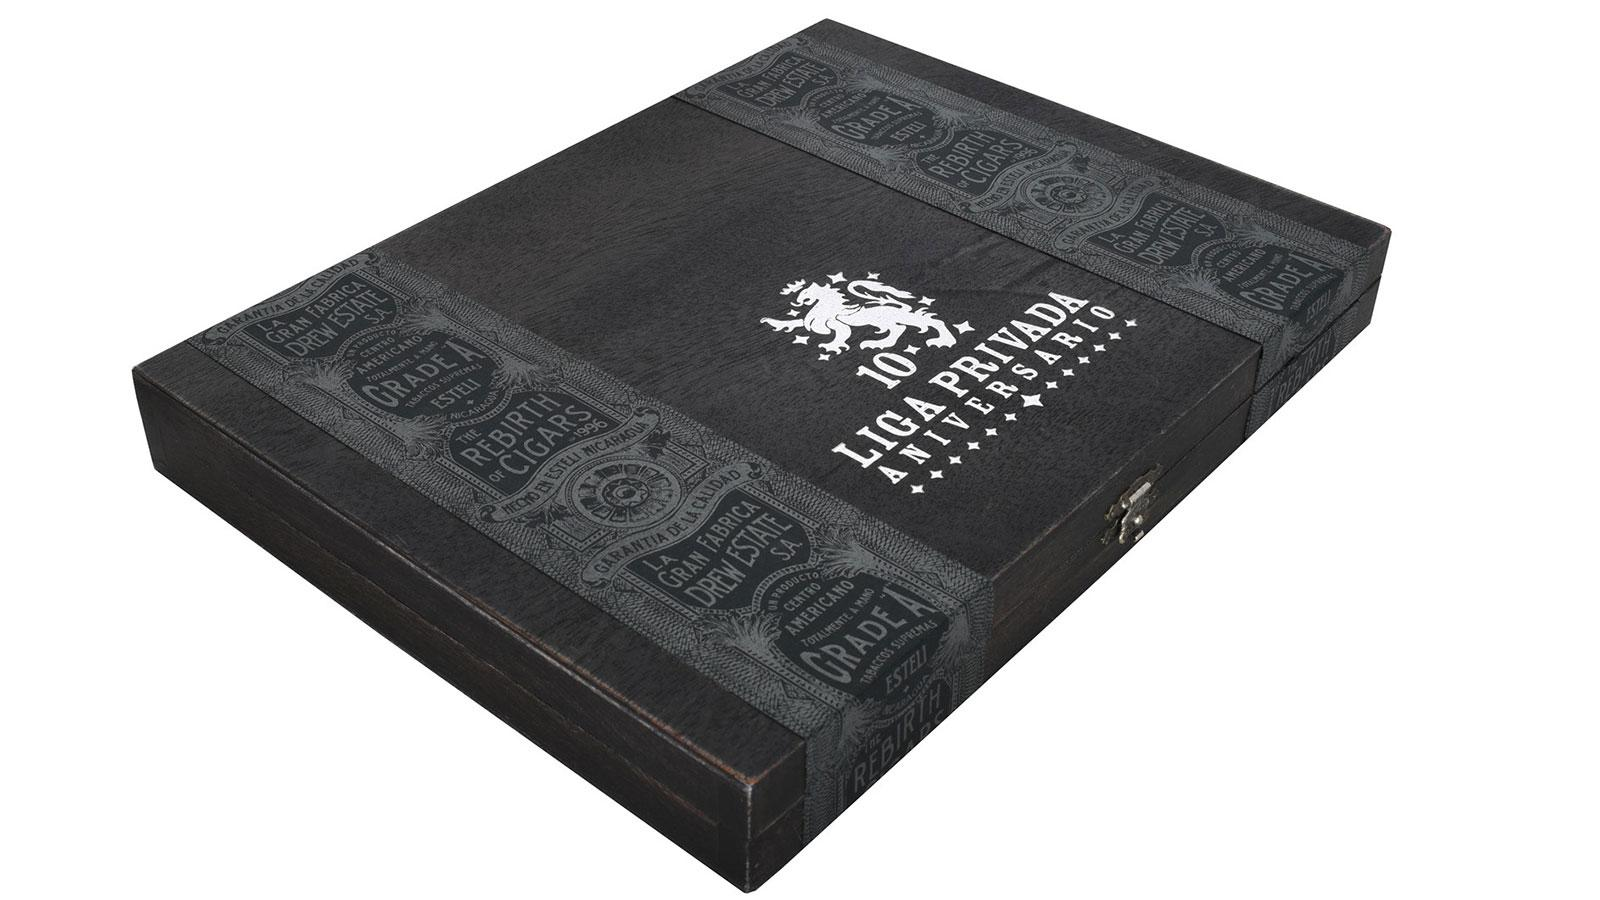 Only 1,000 boxes of Liga Privada 10-Year Aniversarios will be produced for now.